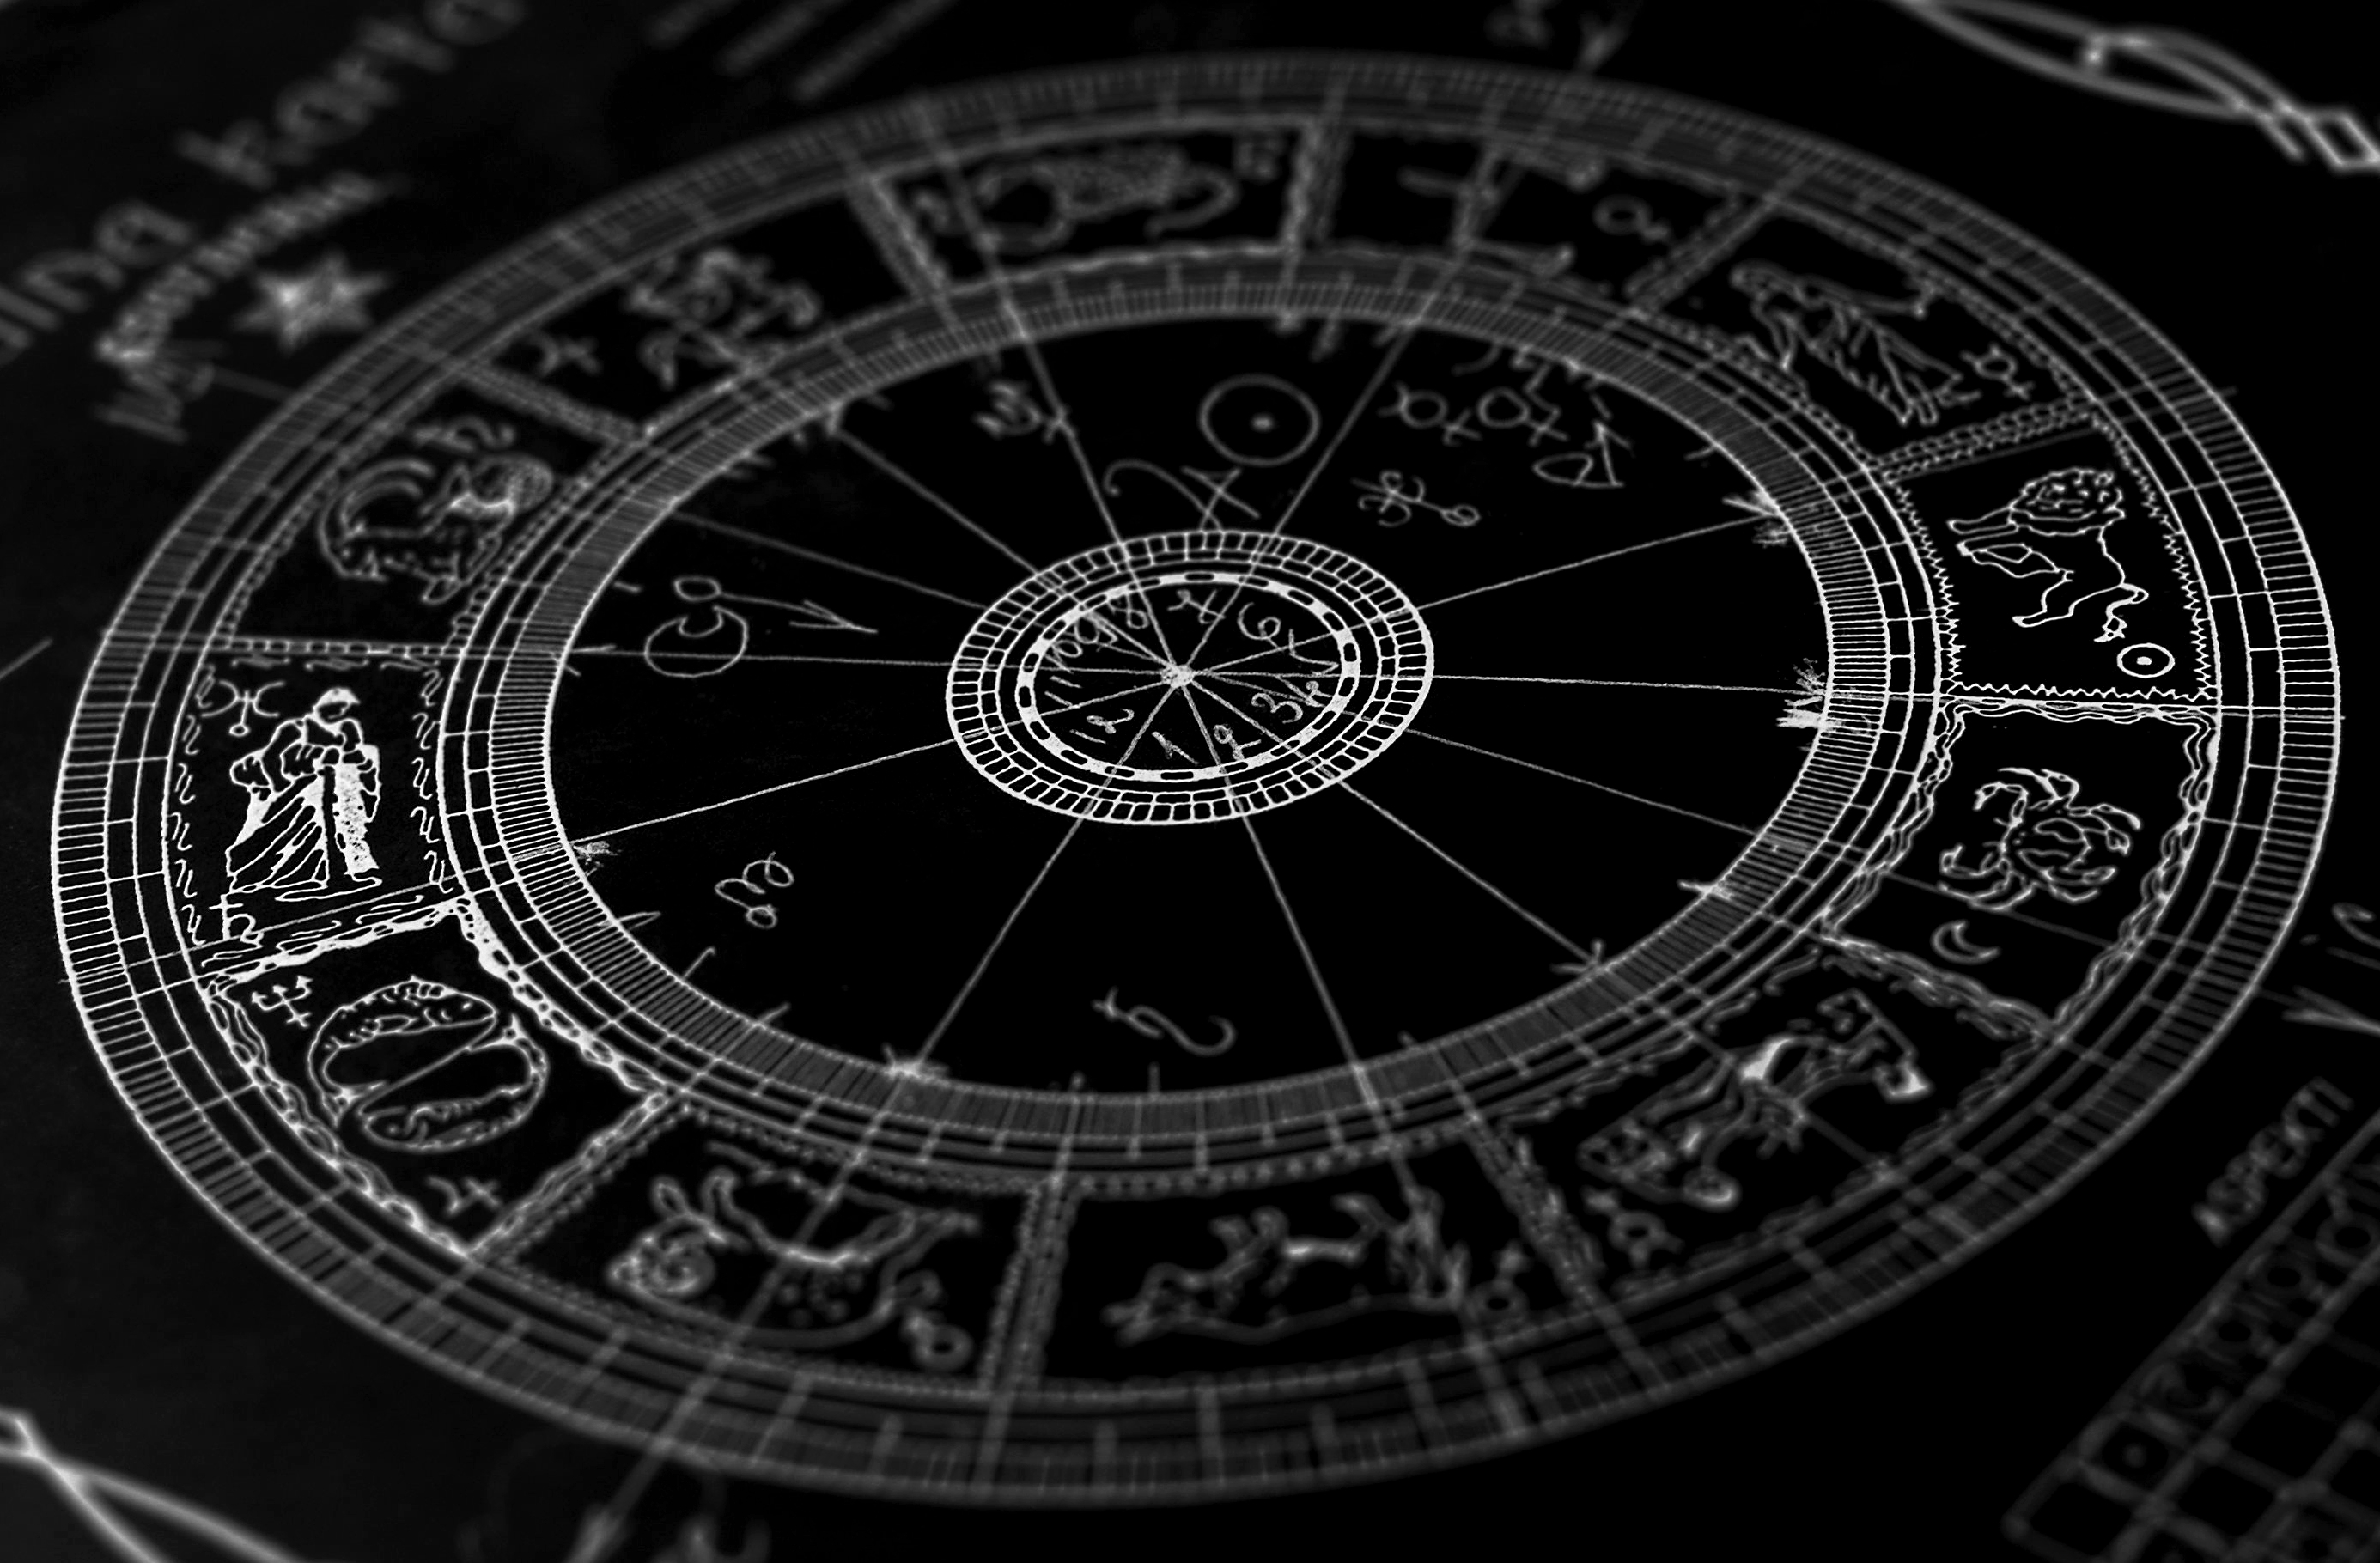 Философия в картинках - Страница 37 Zodiac_signs_Signs_of_the_Zodiac__a_beautiful_picture_on_a_black_background_047504_